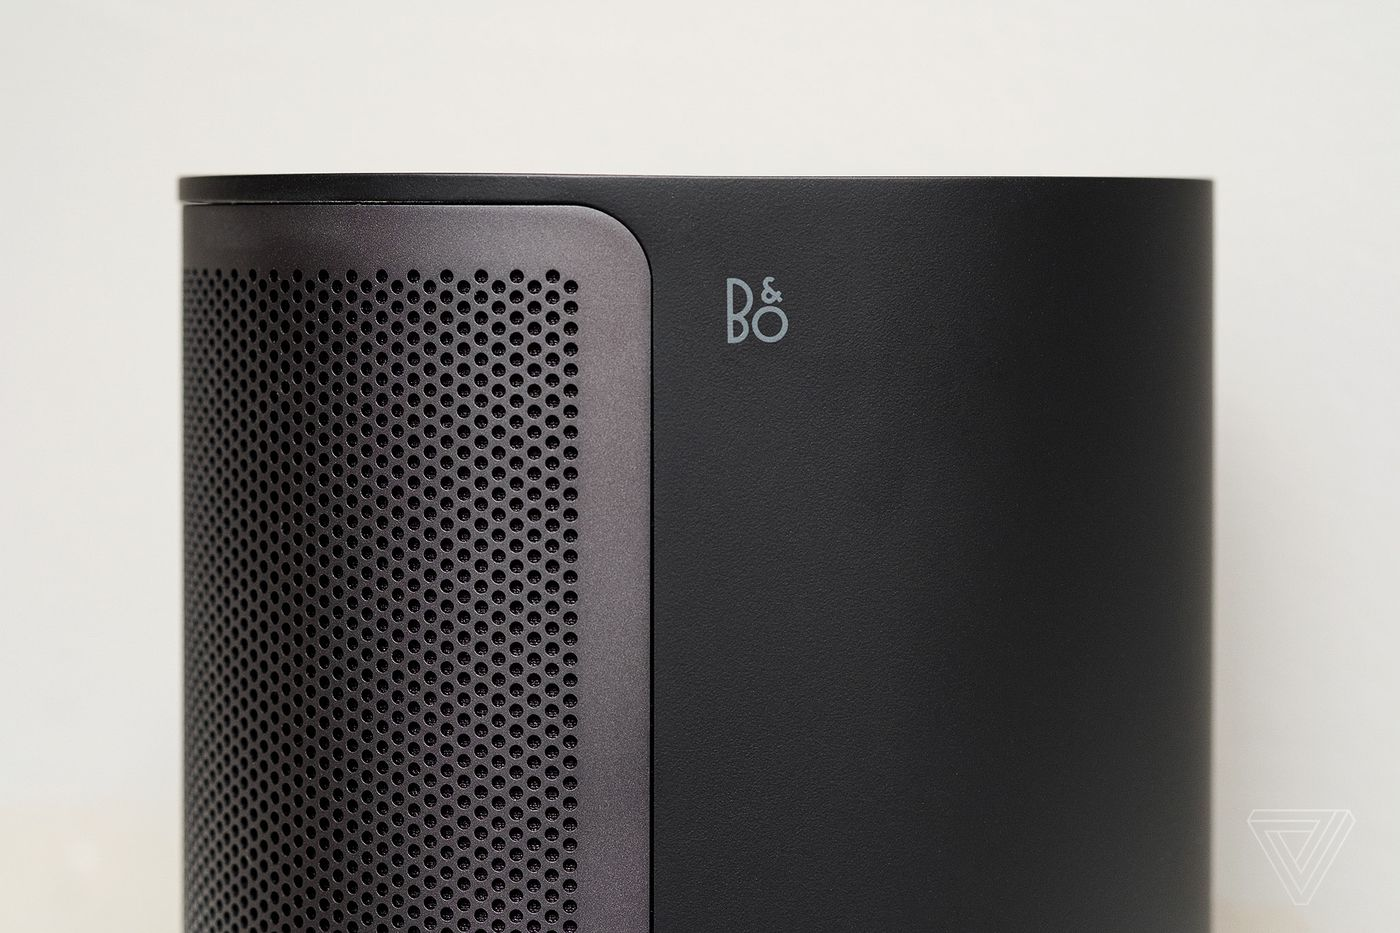 B&O Play Beoplay M3 review - The Verge